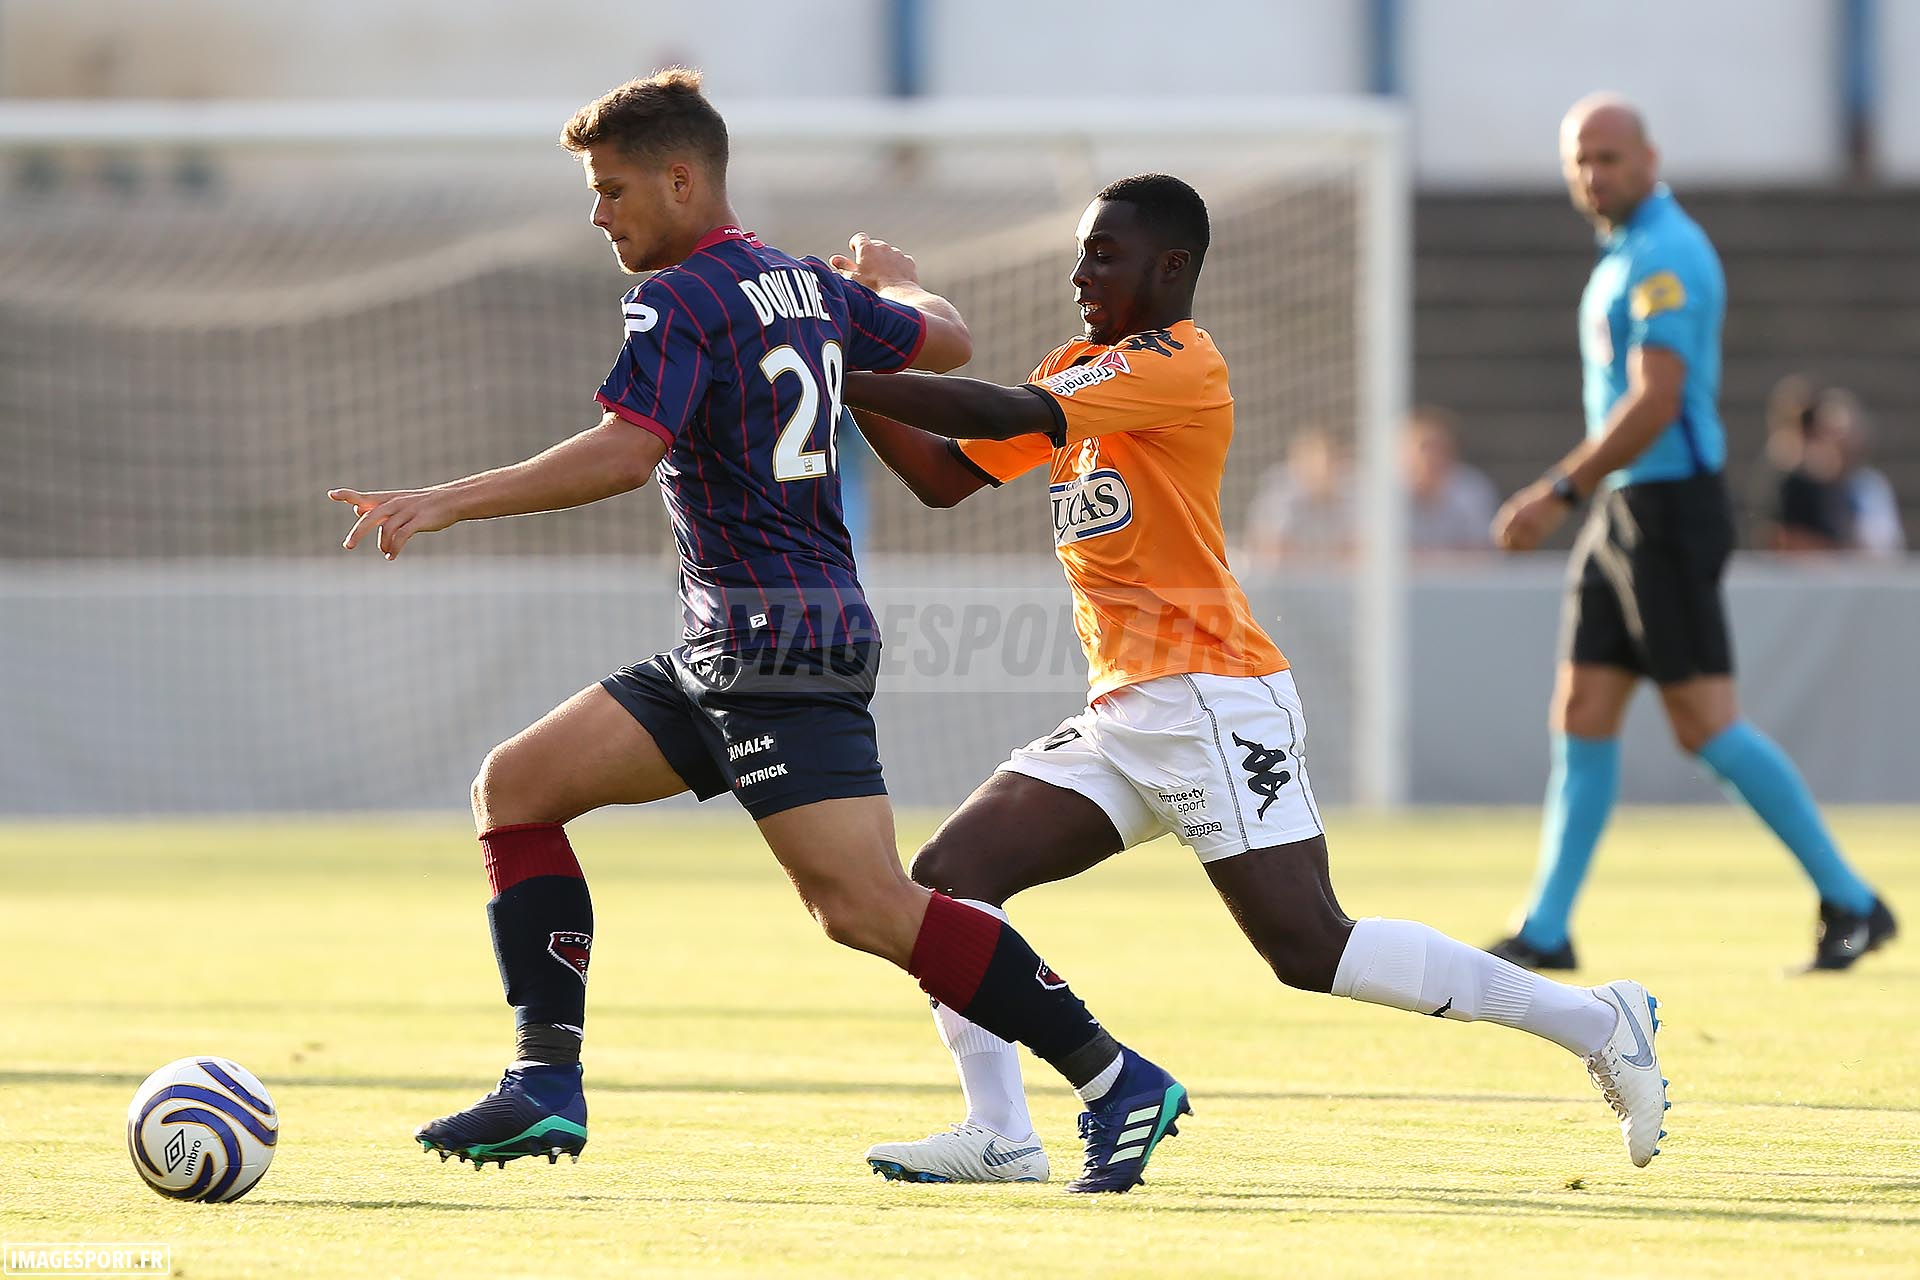 David DOULINE (Clermont Foot) / Baba CISSE (Stade Lavallois)